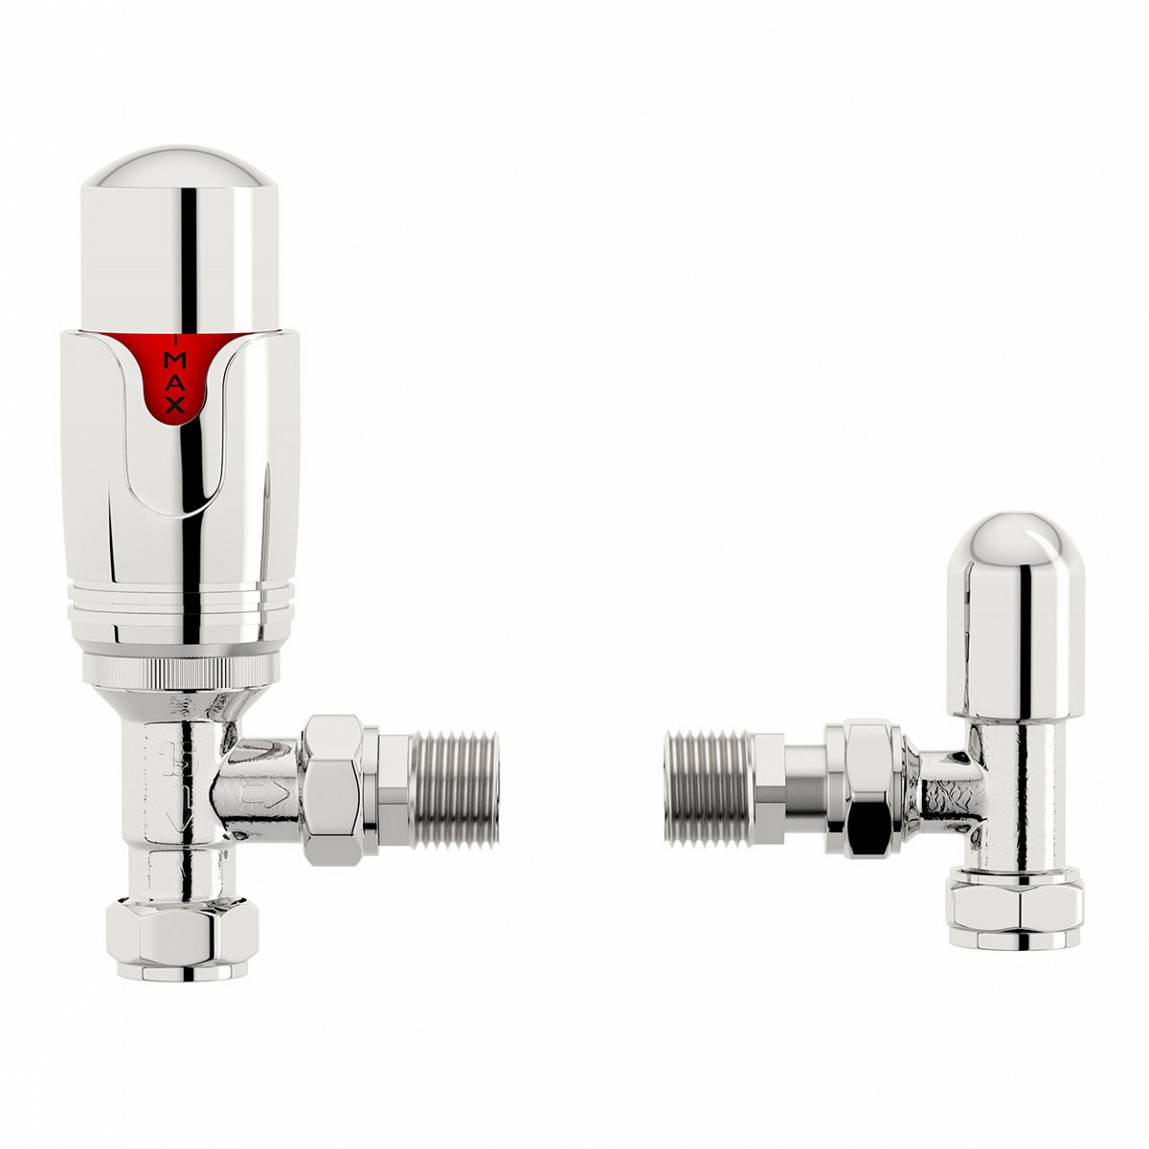 Image of Thermostatic Chrome Angled Radiator Valves